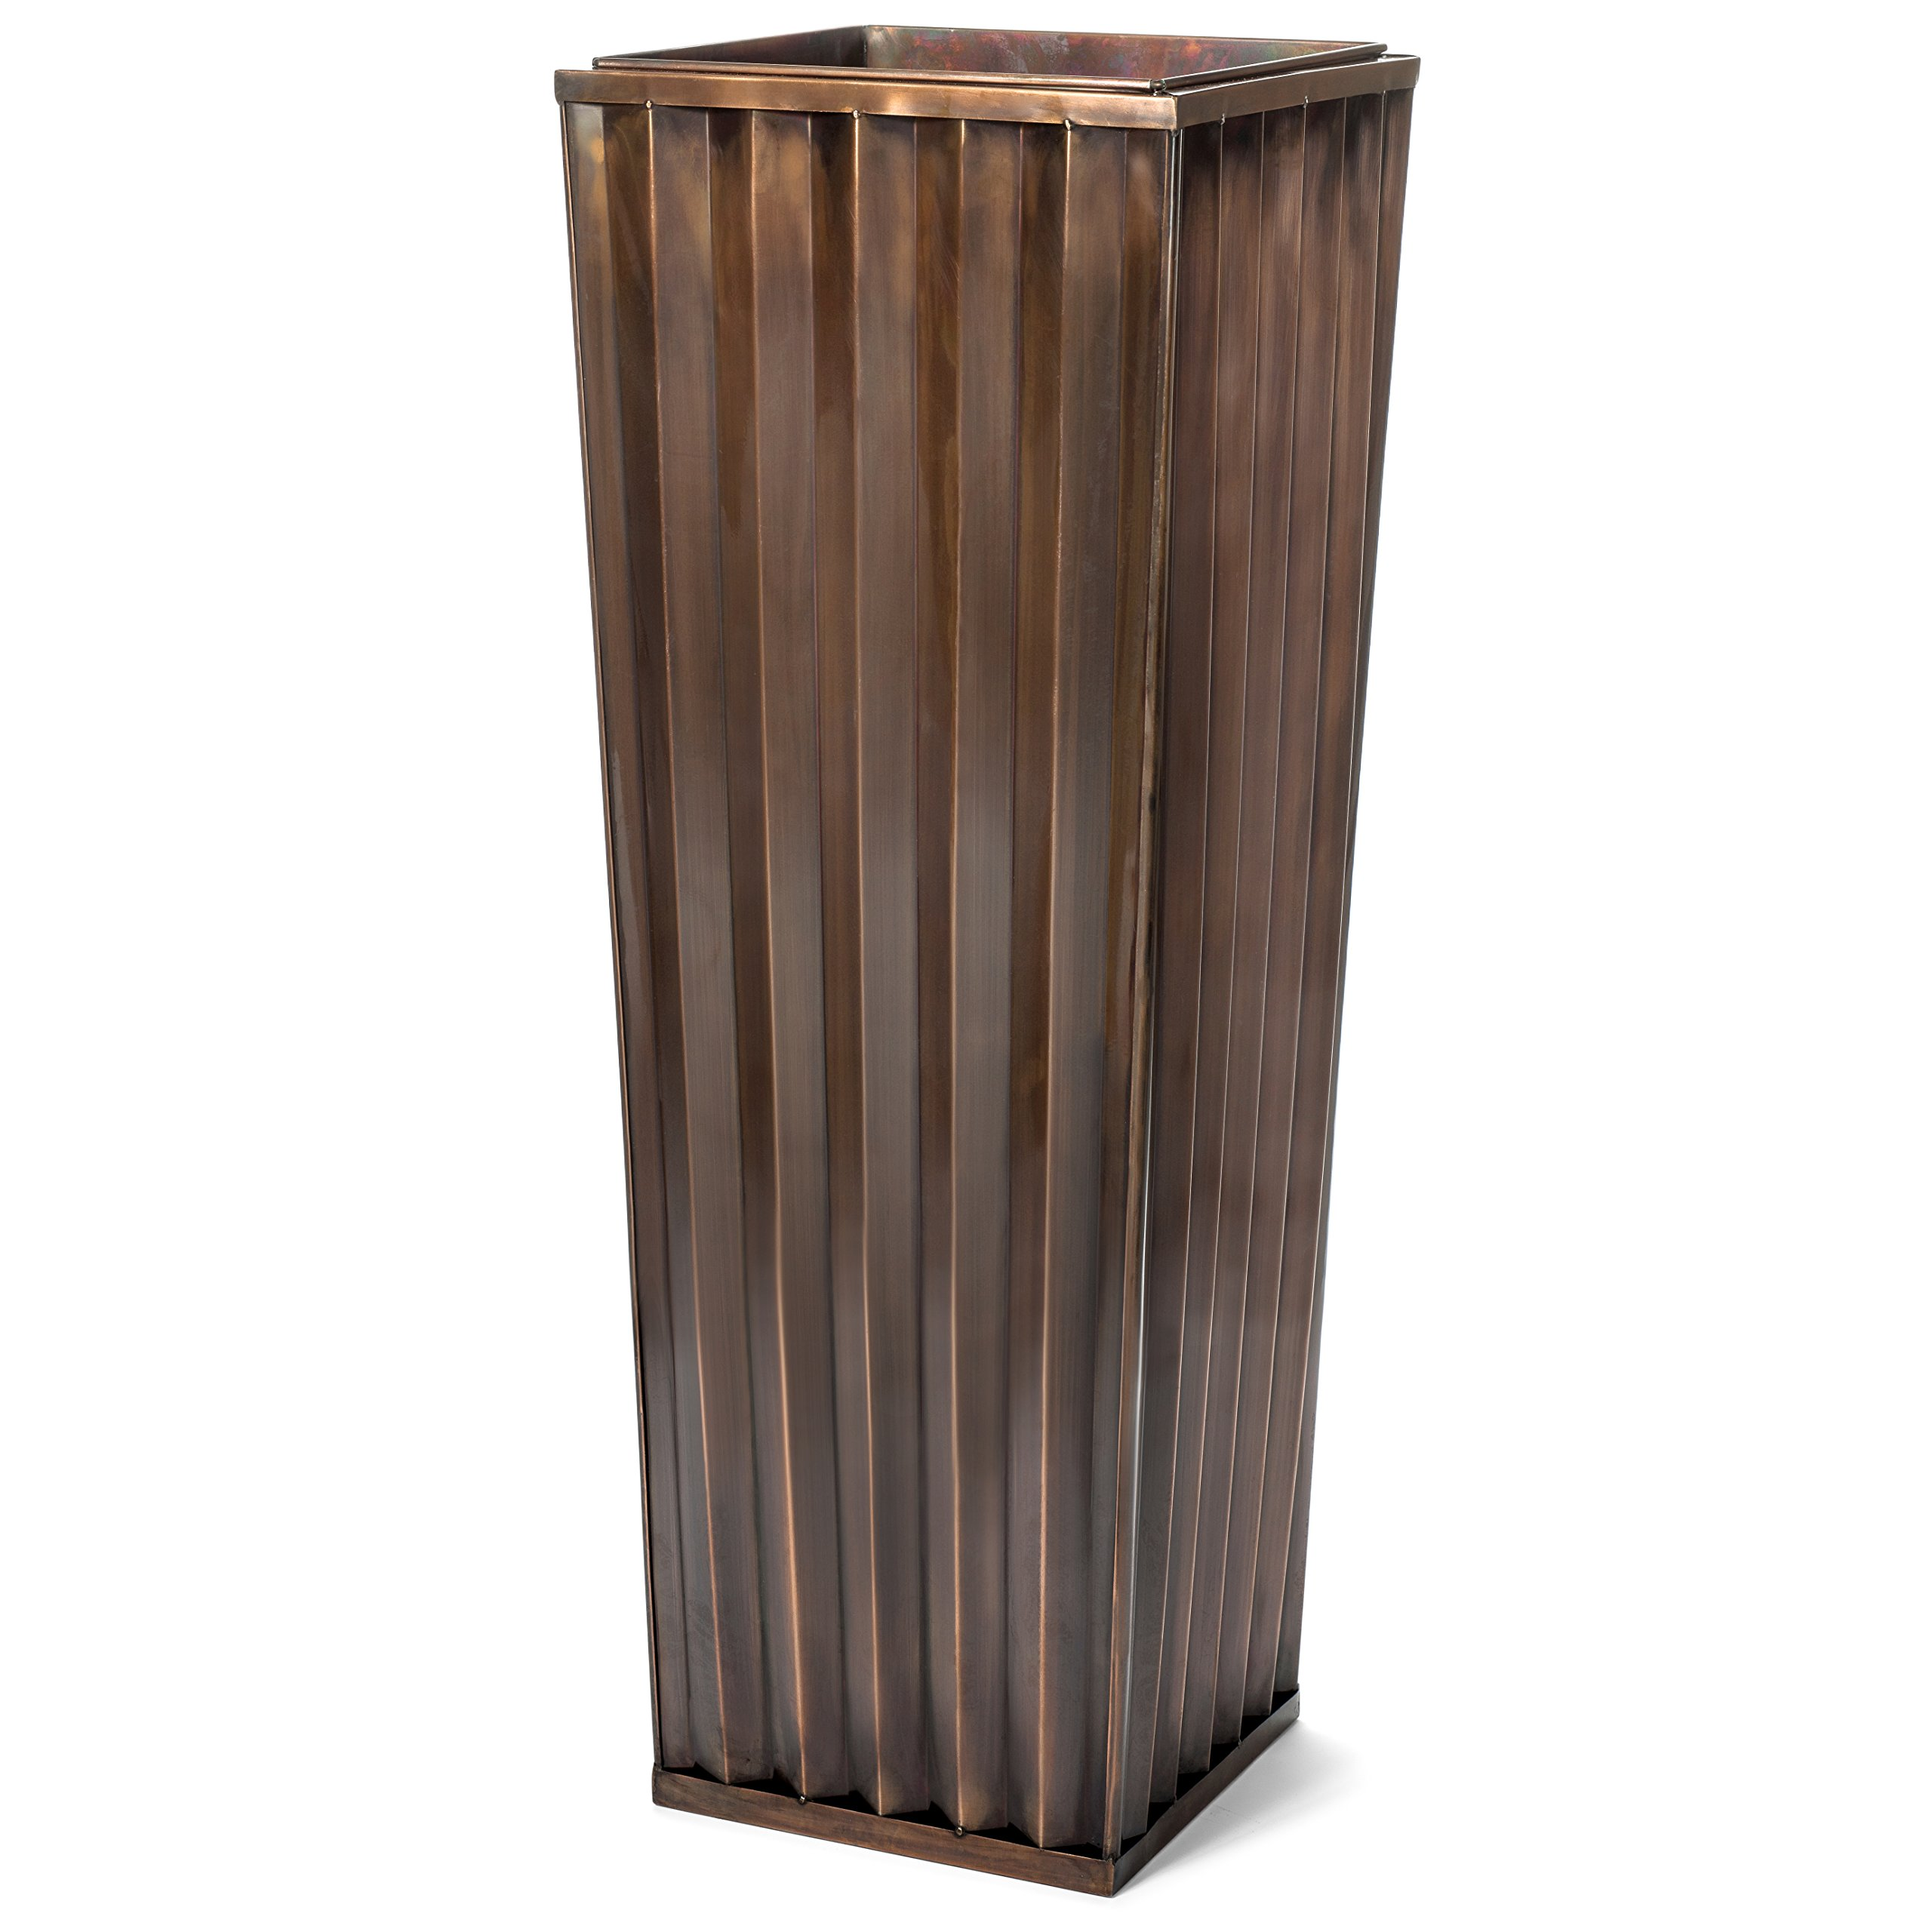 H Potter Tall Outdoor Indoor Planter Patio Deck Flower Ribbed Garden Planters Antique Copper Finish (SMALL)